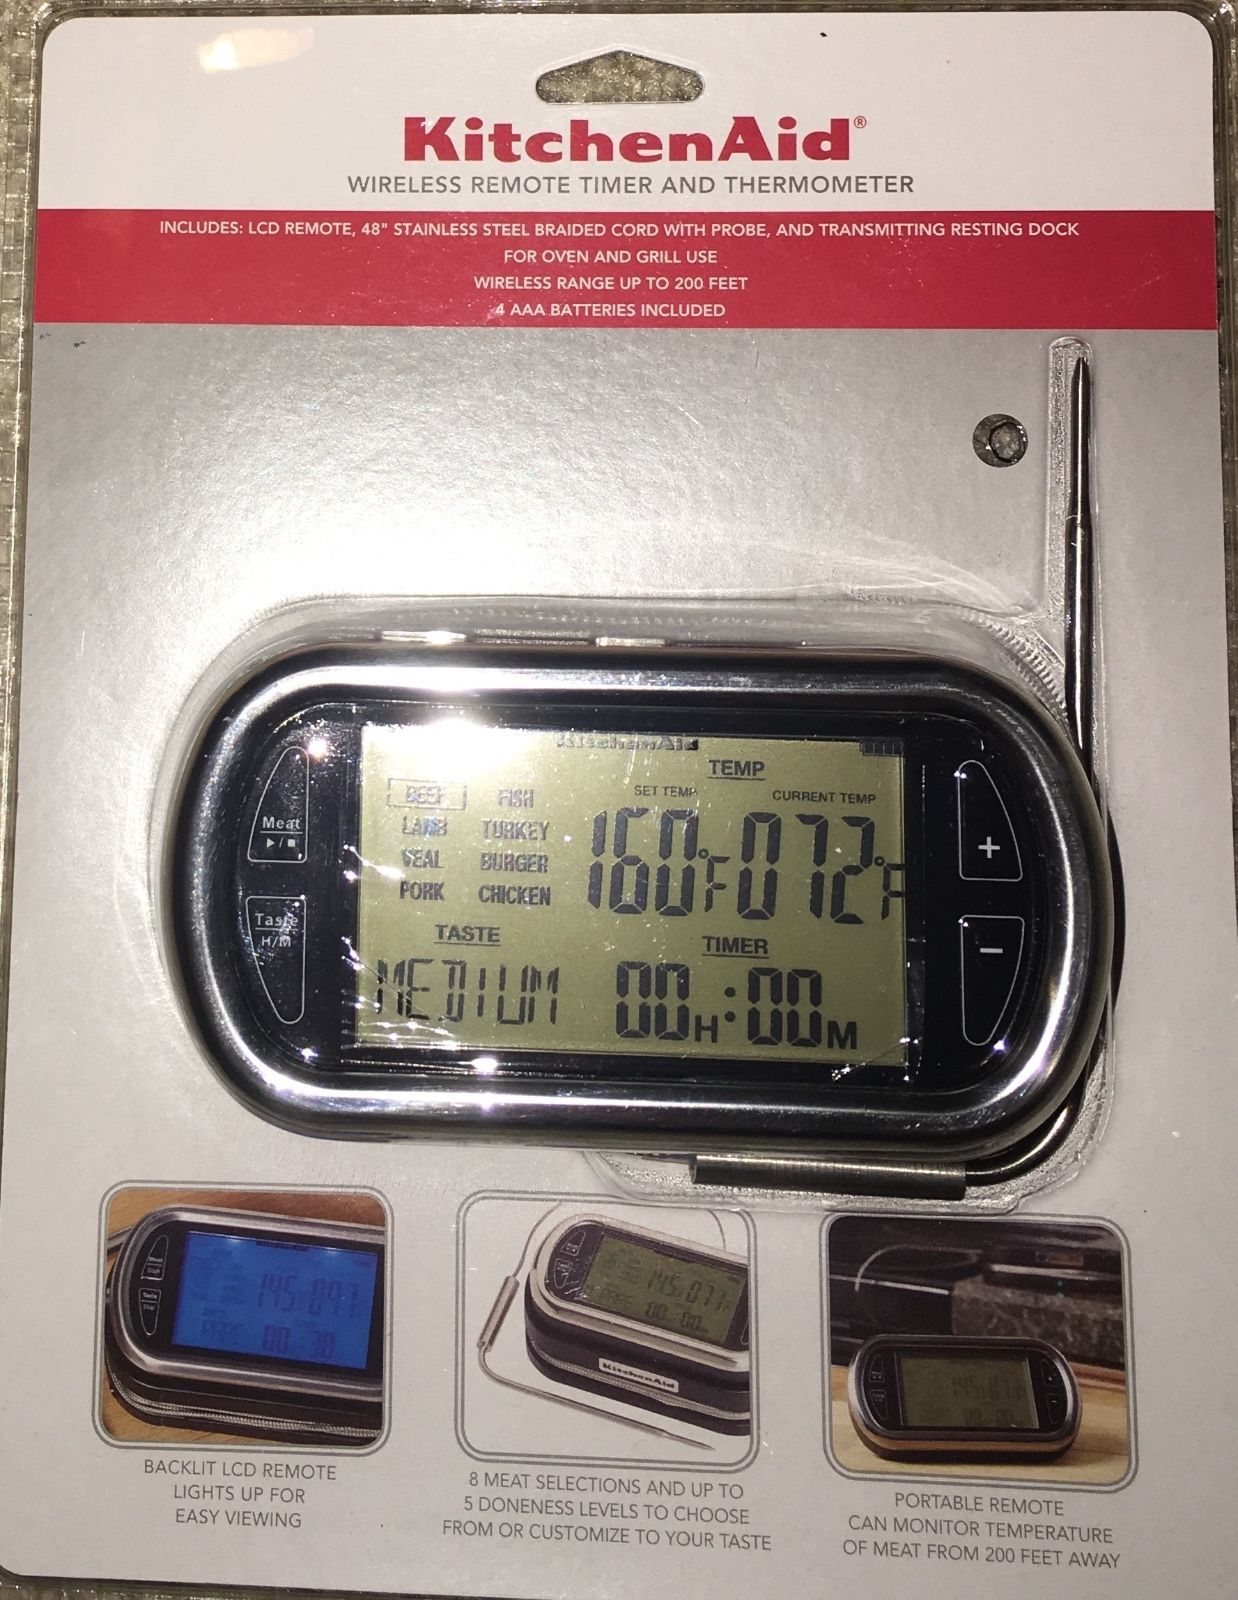 Kitchenaid Timer Wireless Remote With Meat Thermometer Kitchenaid